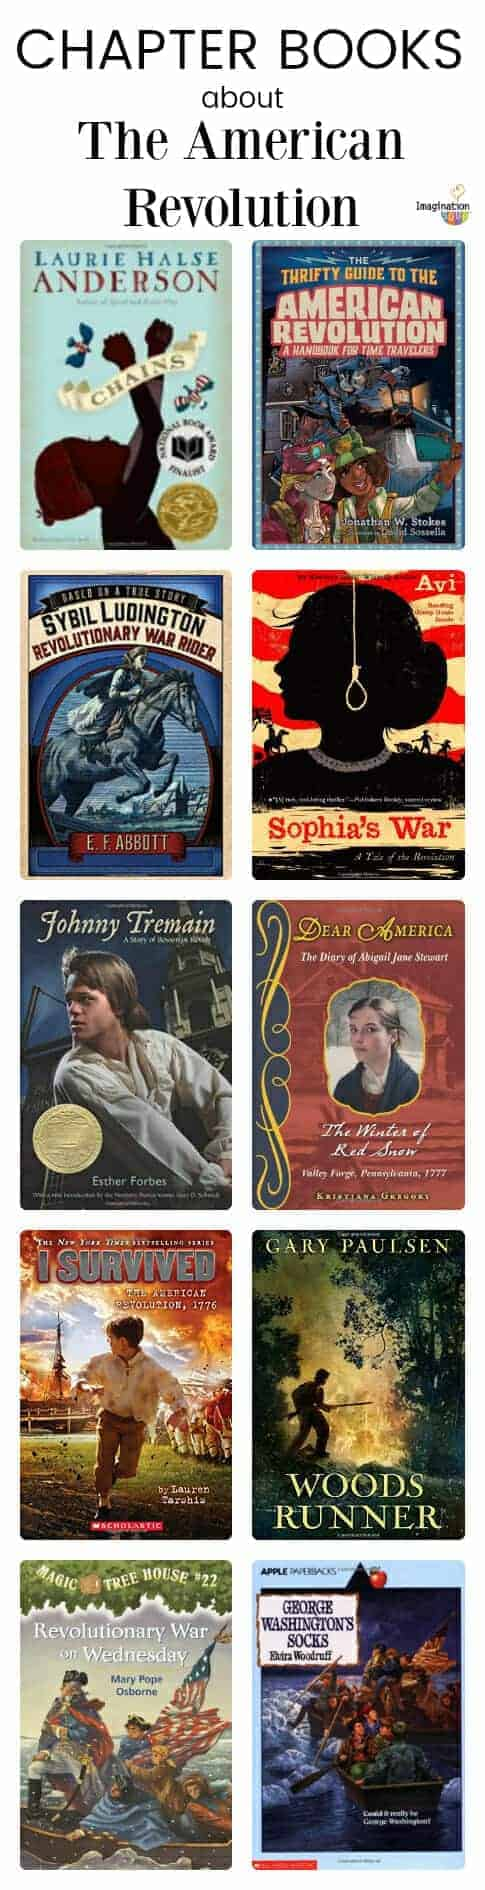 historical fiction chapter books about The American Revolution